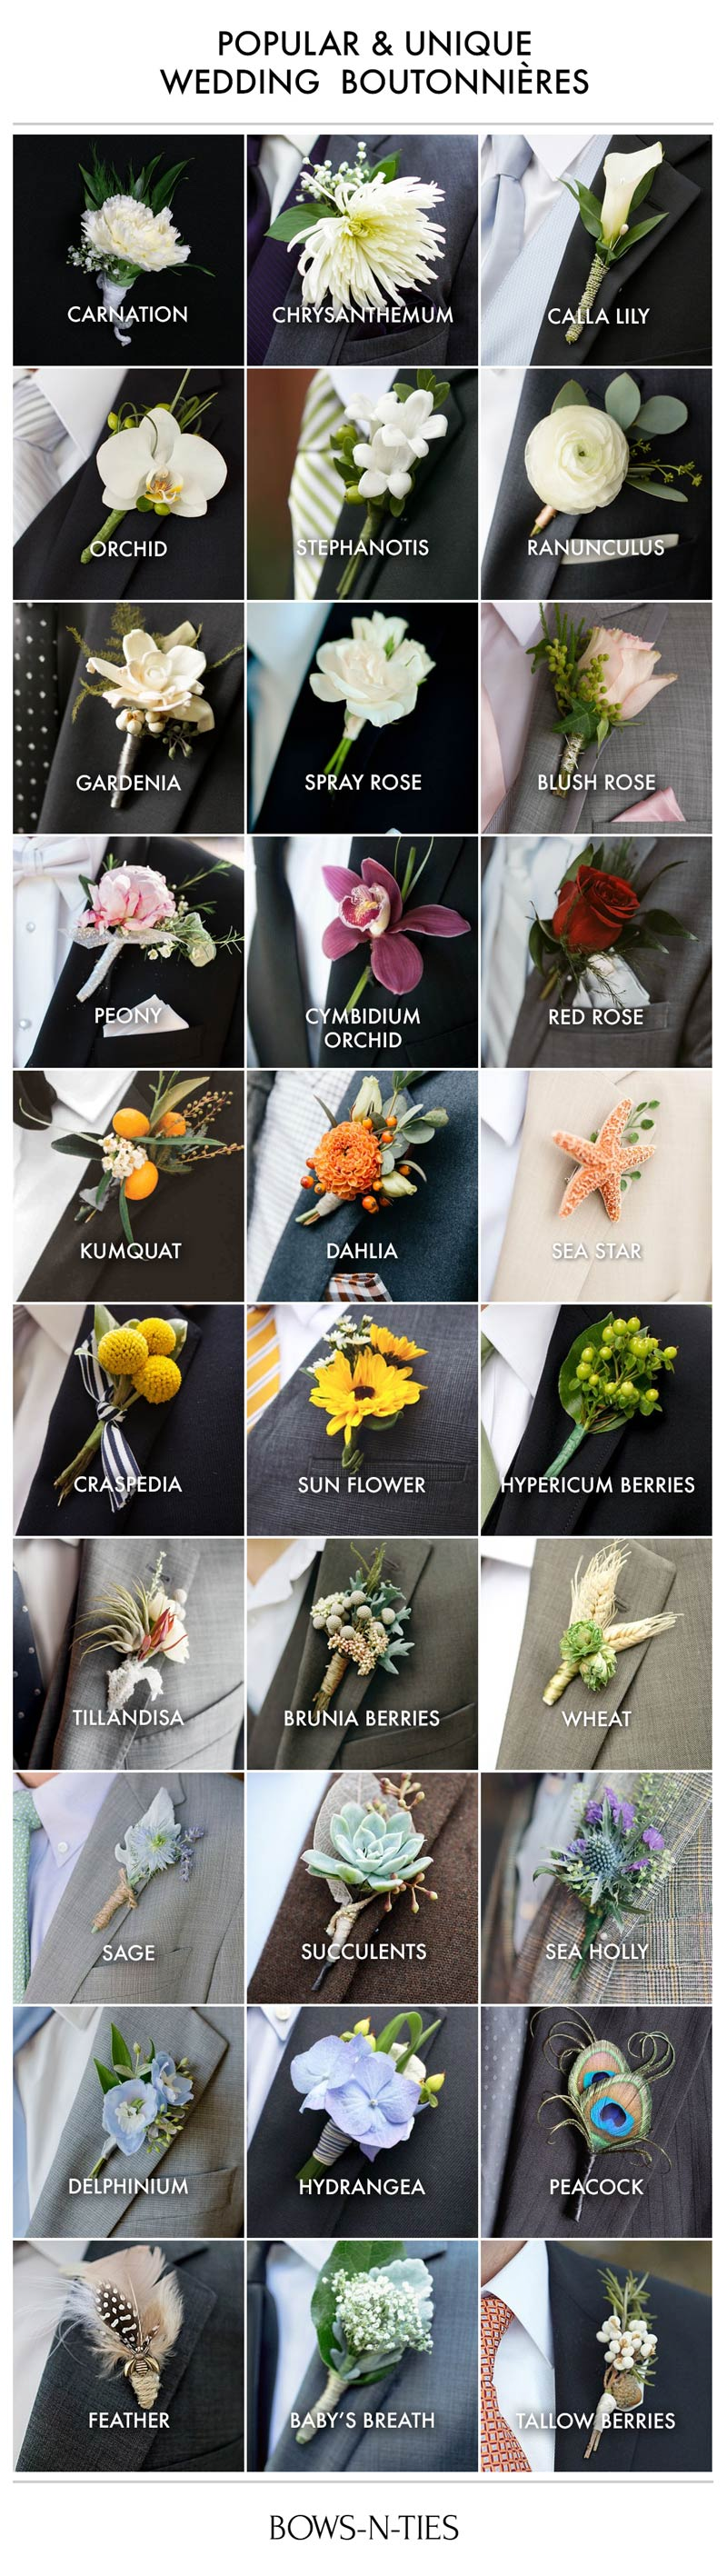 Wedding Boutonniere Guide